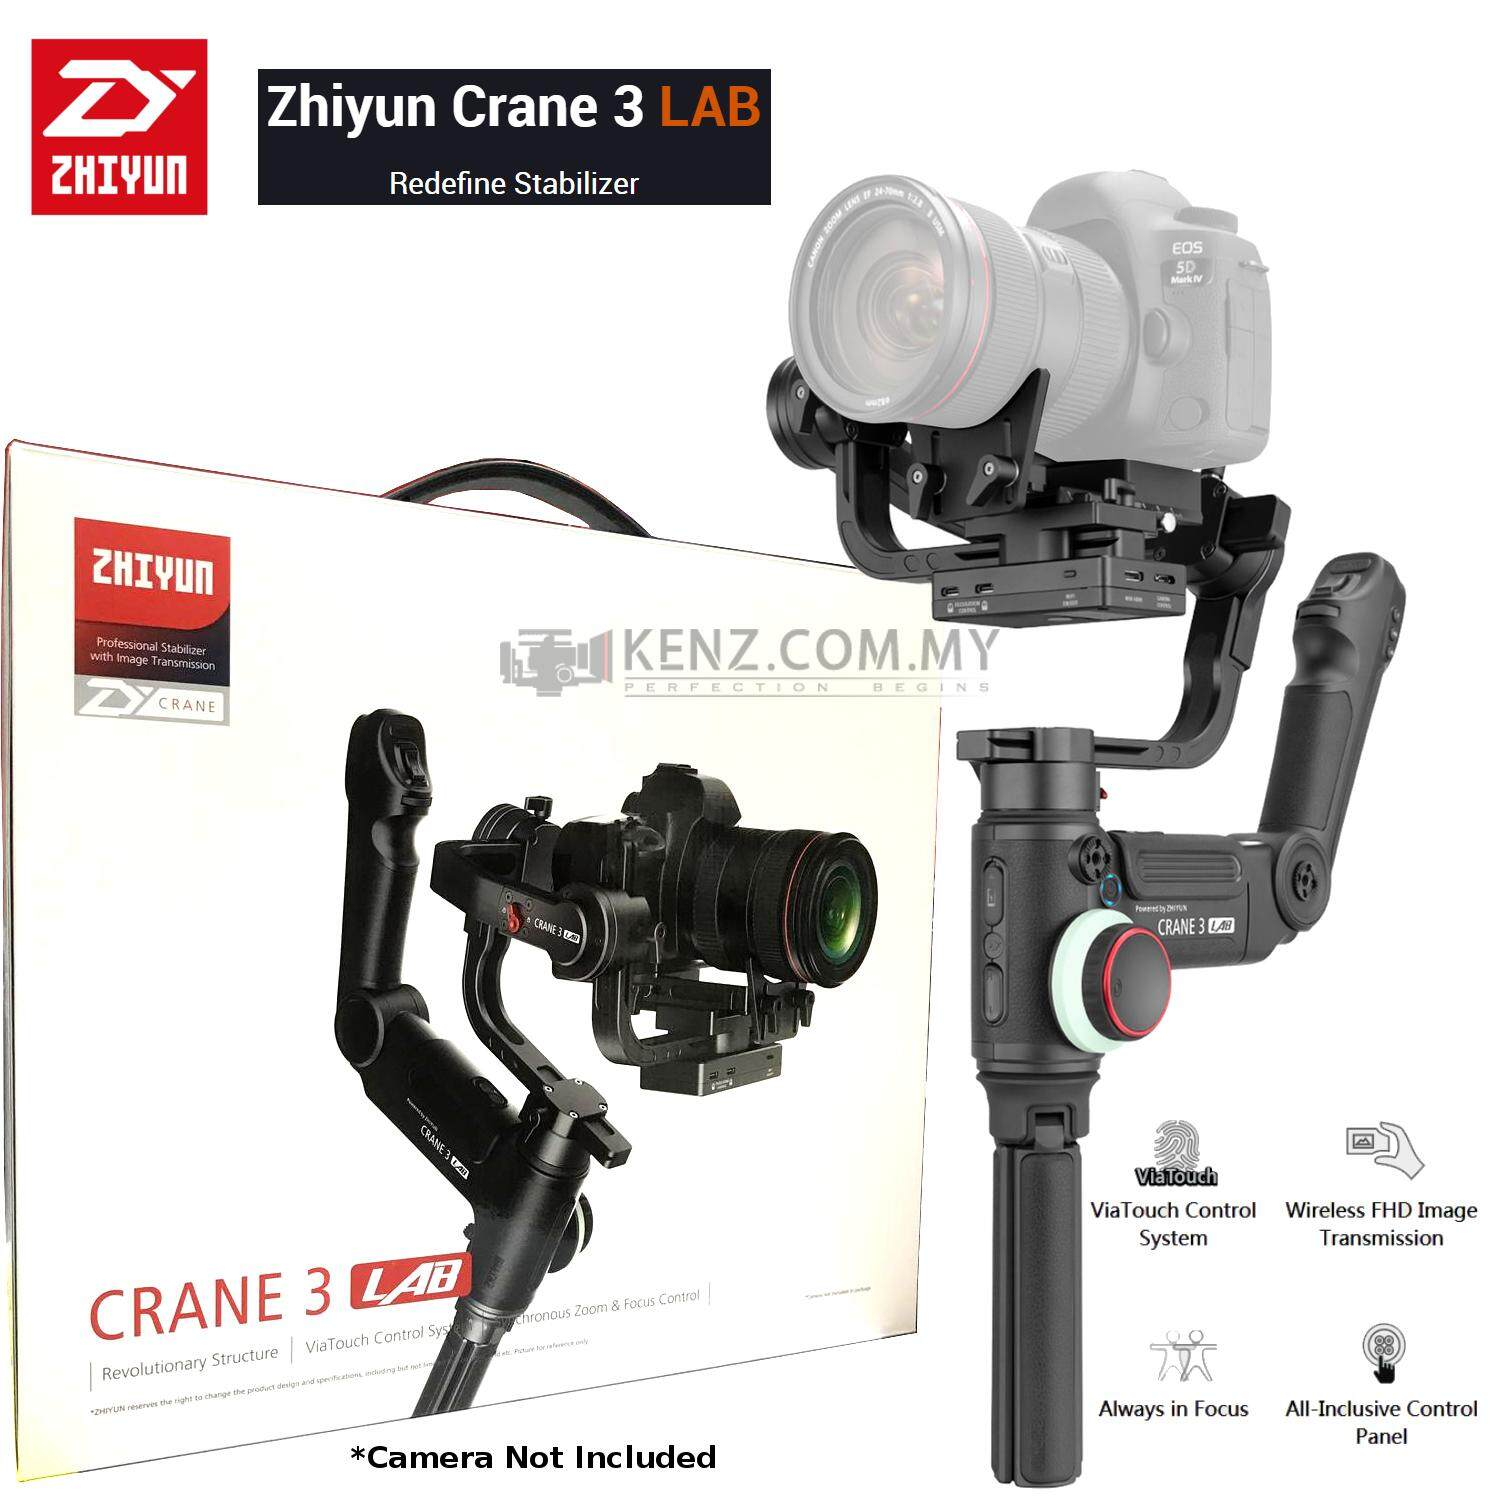 Zhiyun CRANE 3 LAB Handheld Stabilizer DSLR Camera Gimbal iOS Android ZY  PLAY App